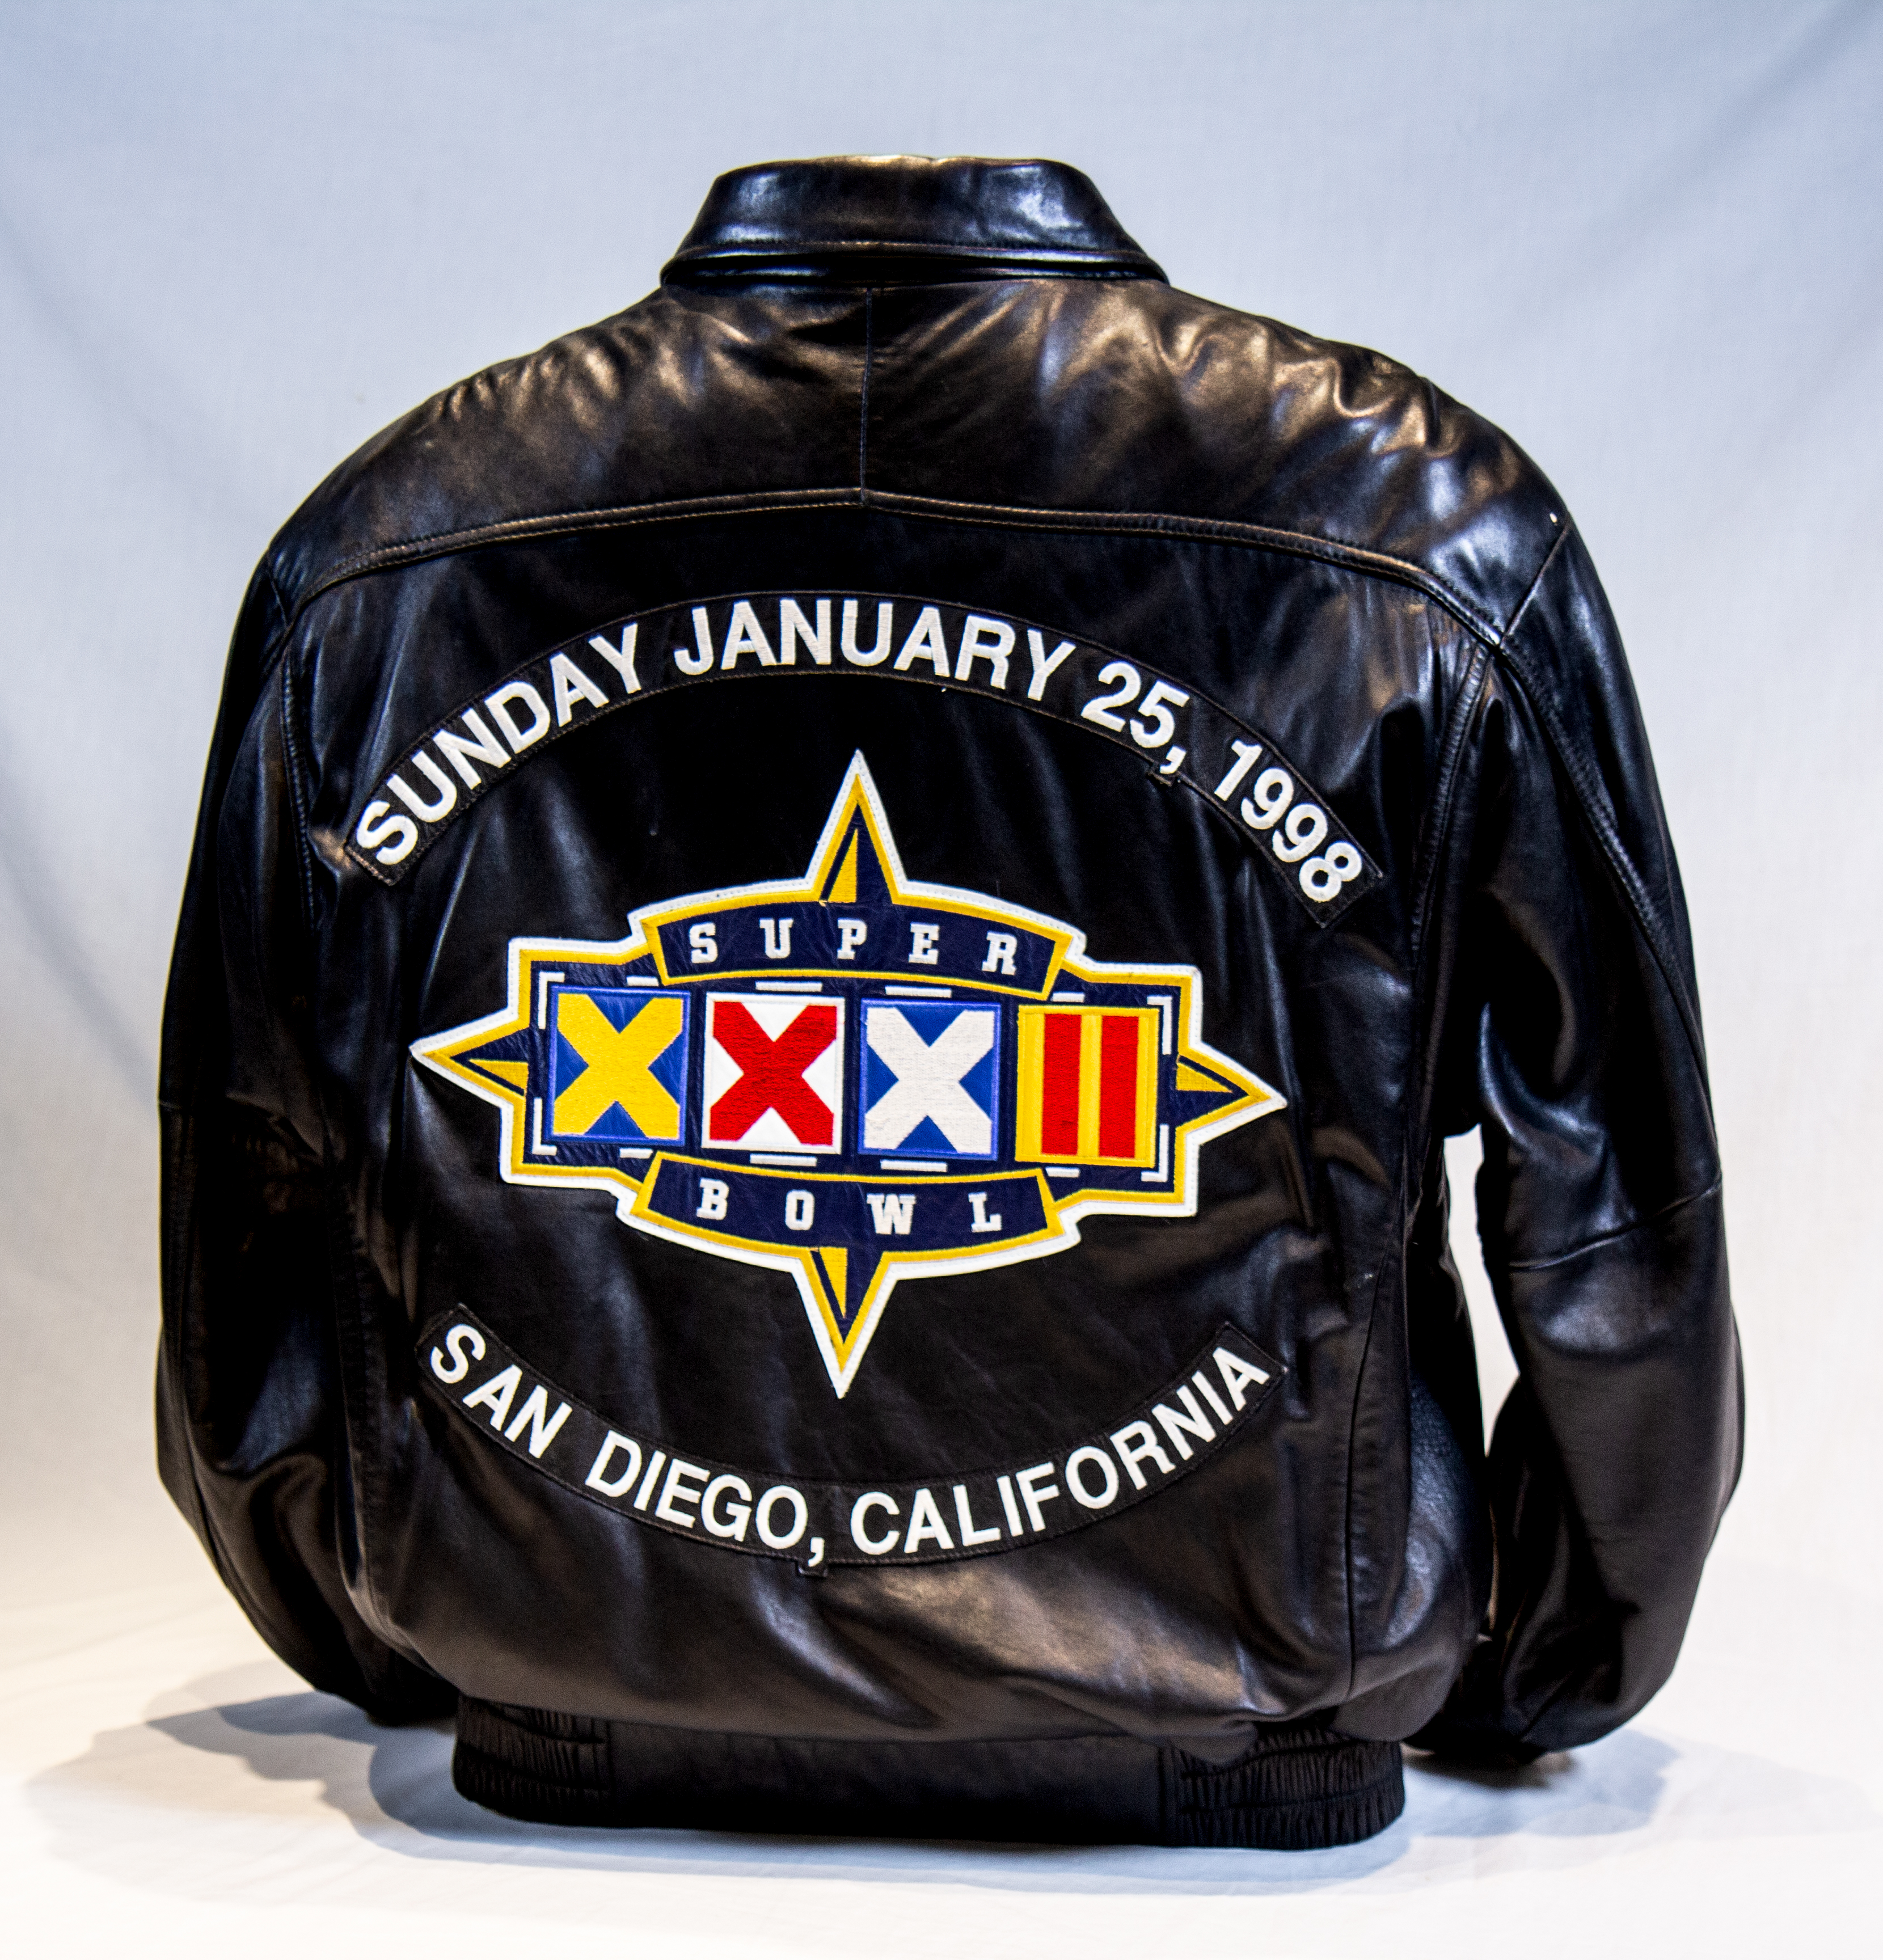 online store 351cb 41f8e Super Bowl XXXII Jacket back | Mile High Sports